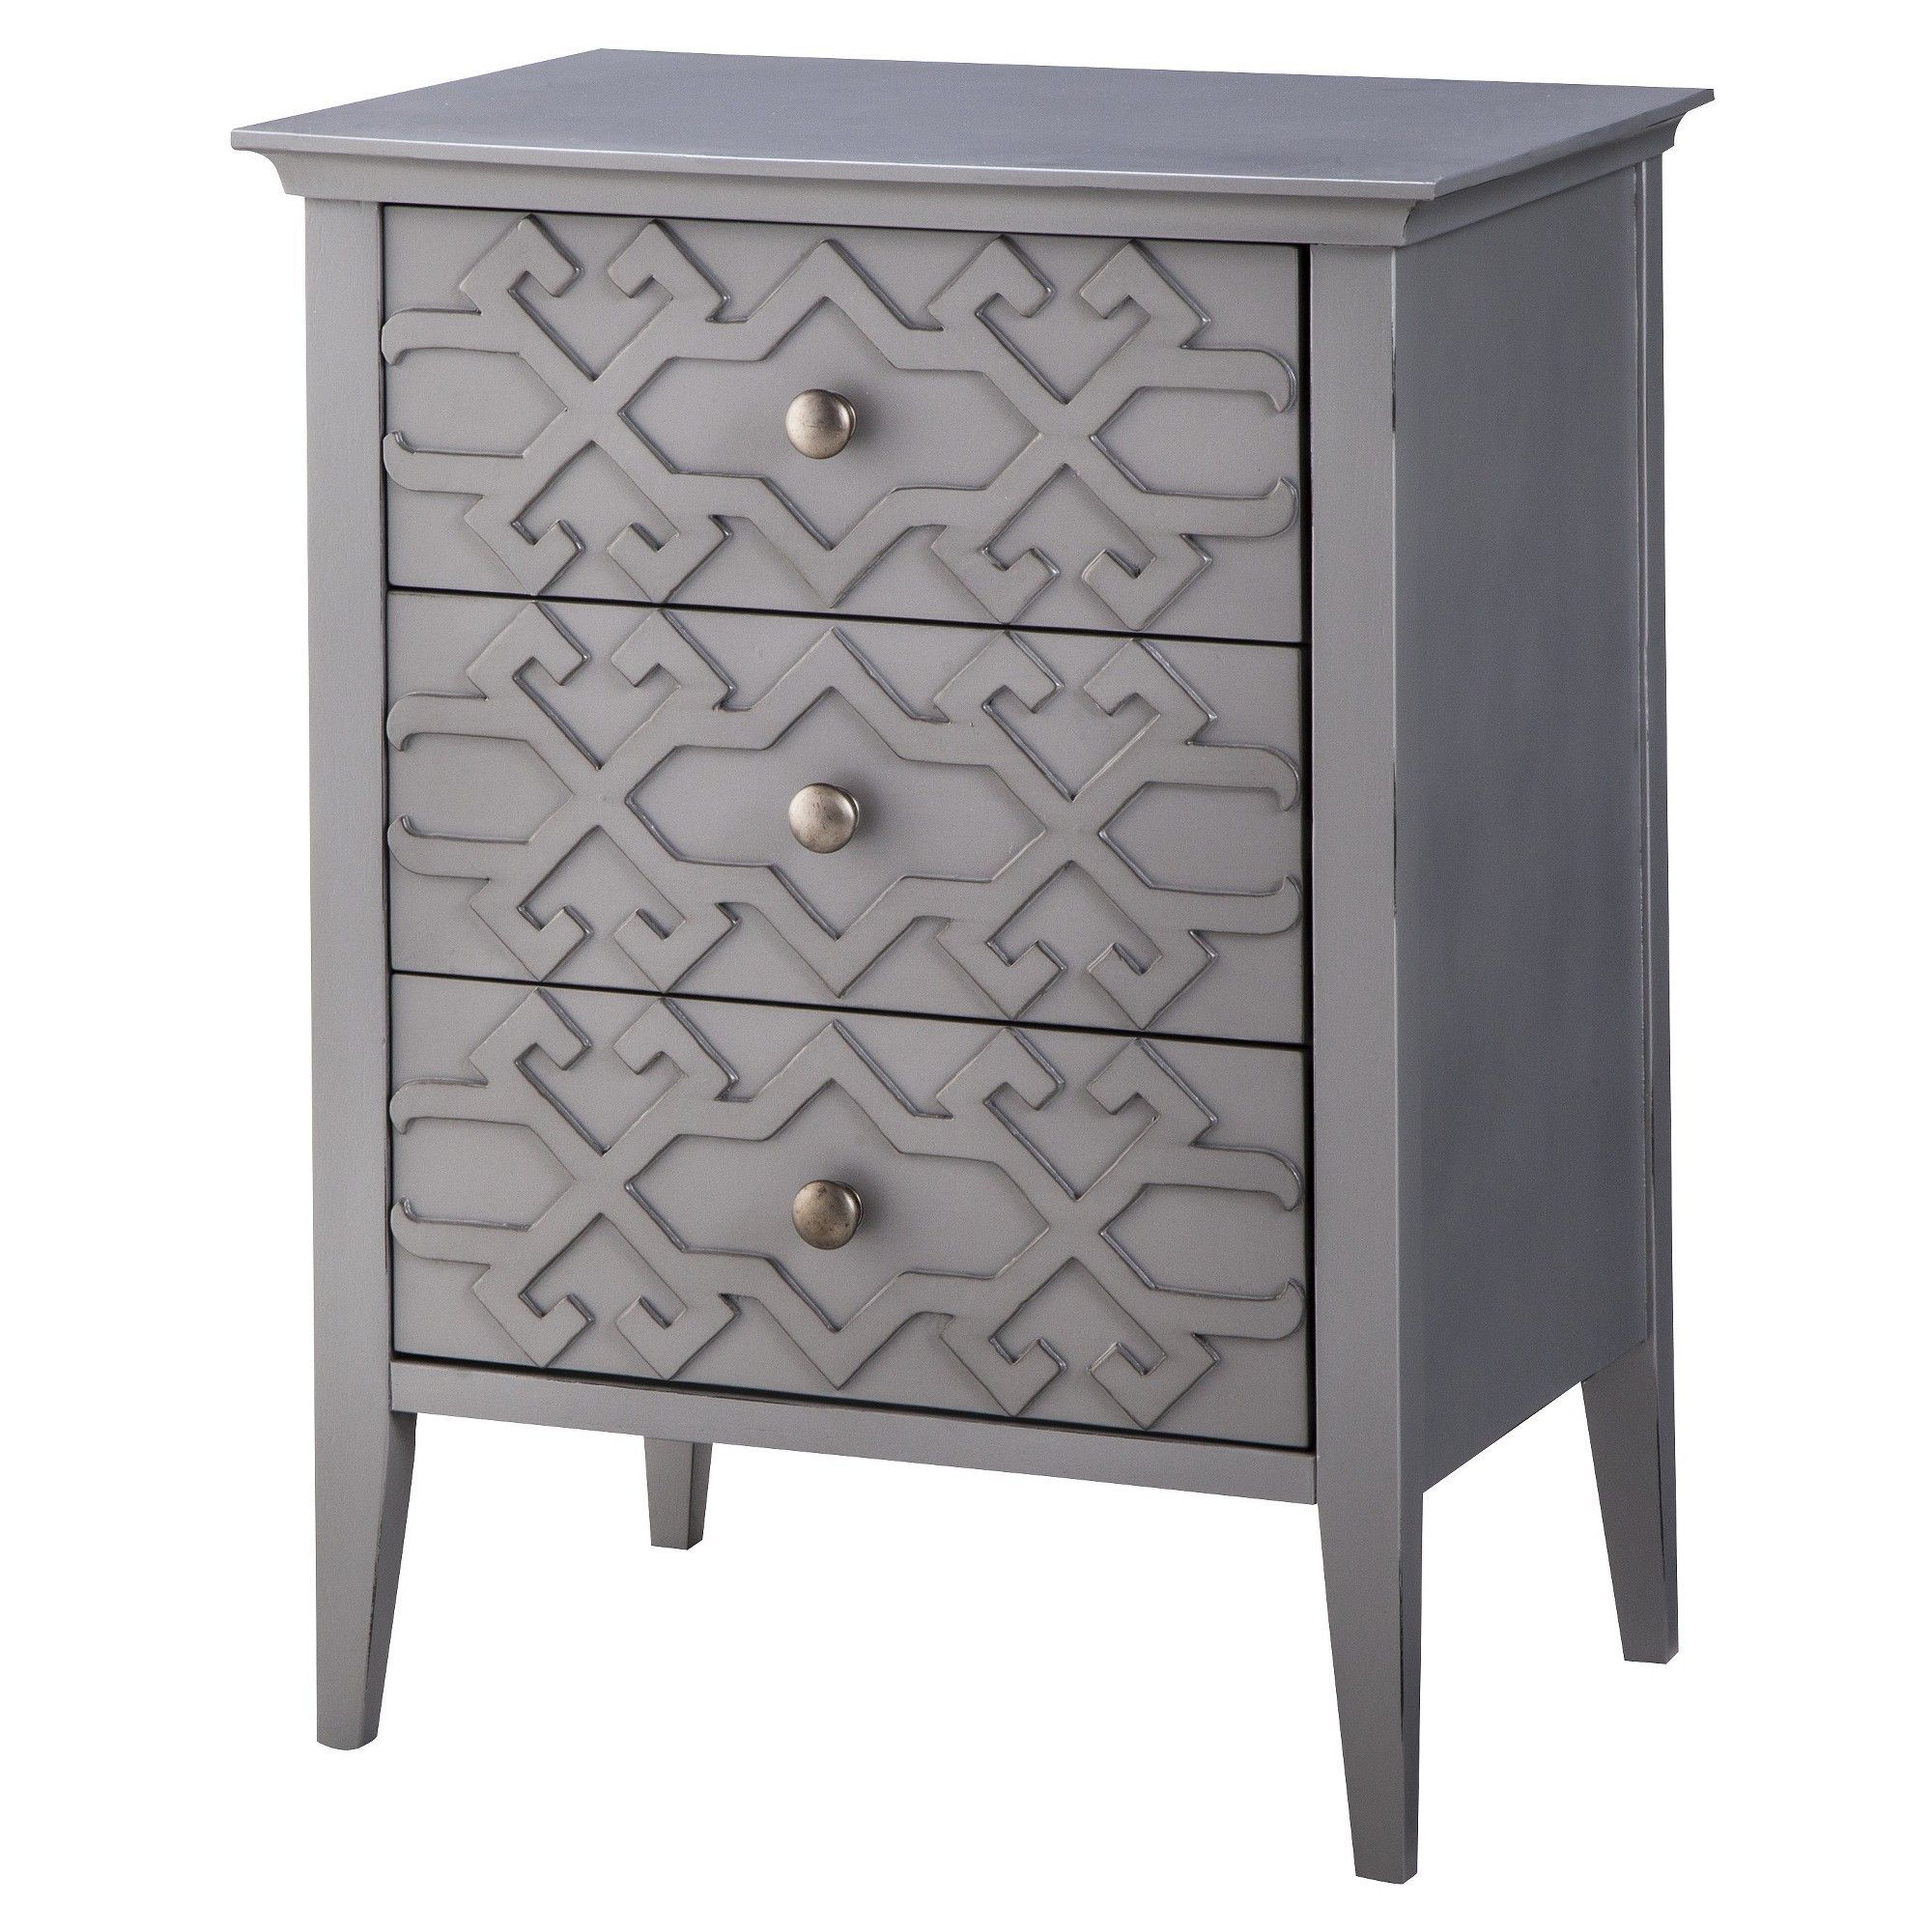 fretwork accent table threshold gray products round drum wichita furniture bedside lamps kmart spindle legs end tables from target mosaic garden and chairs west elm wood bench